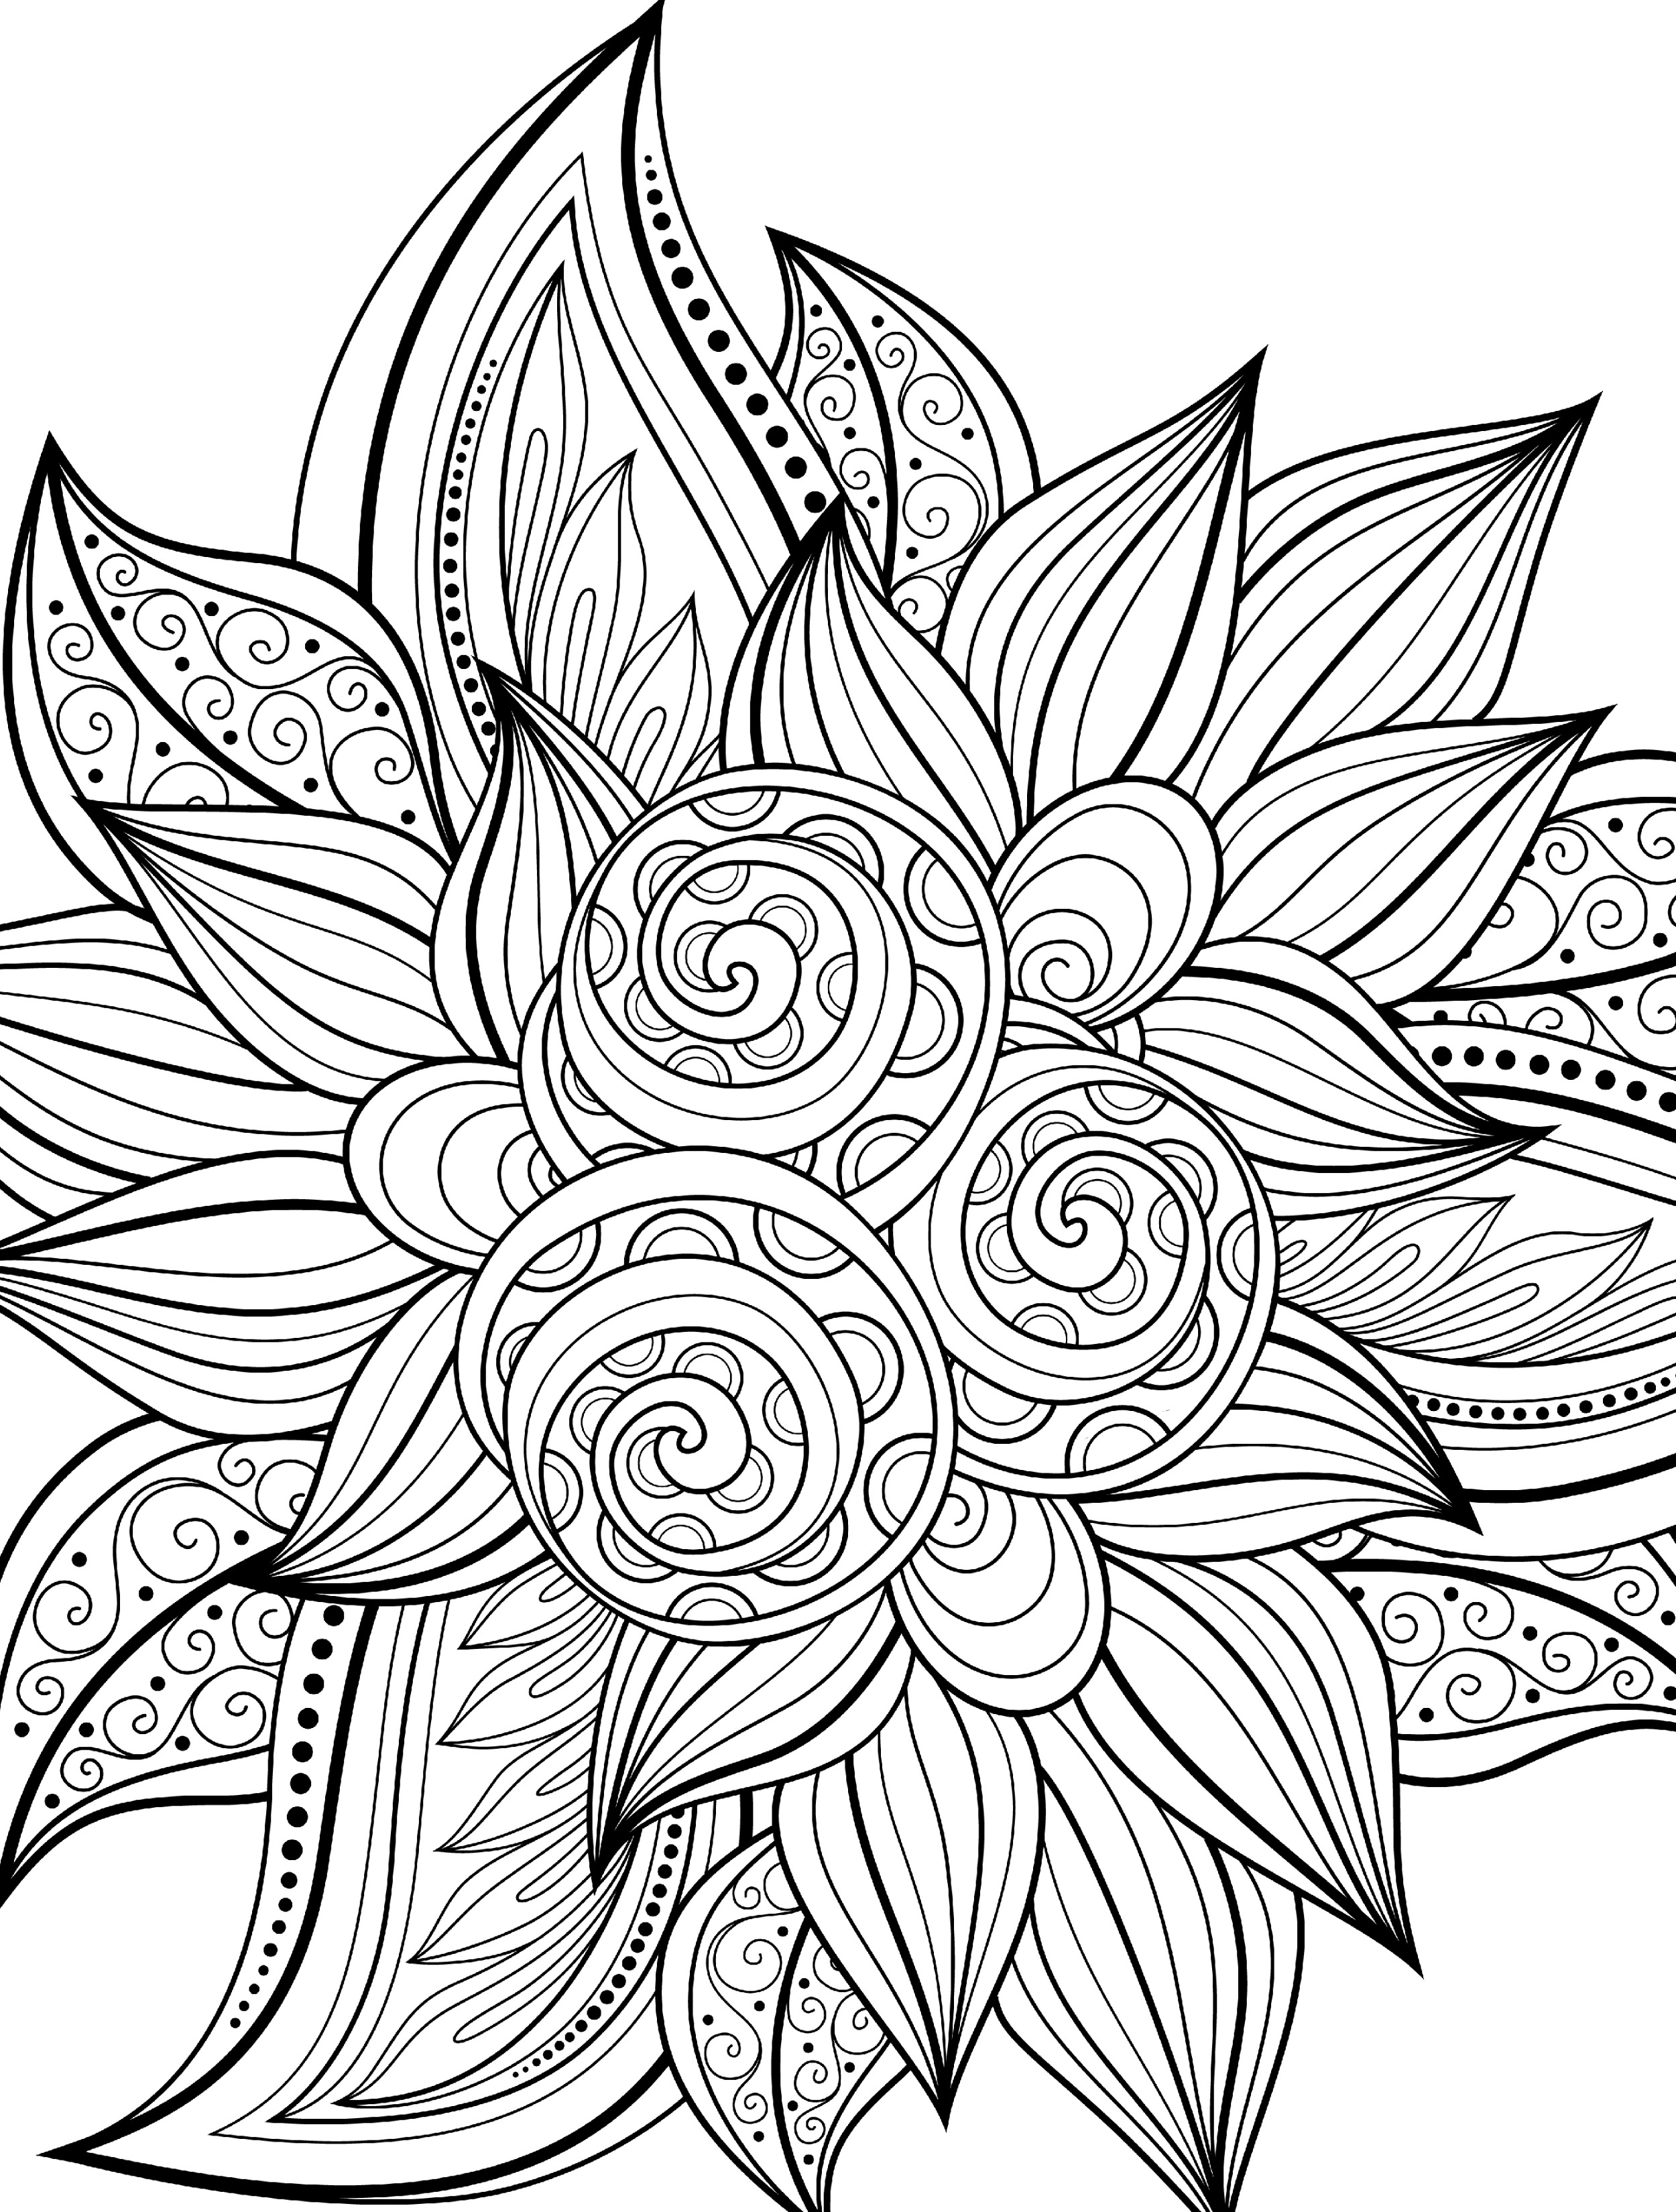 2500x3300 Holiday Coloring Pages For Adults Free Printable Adult